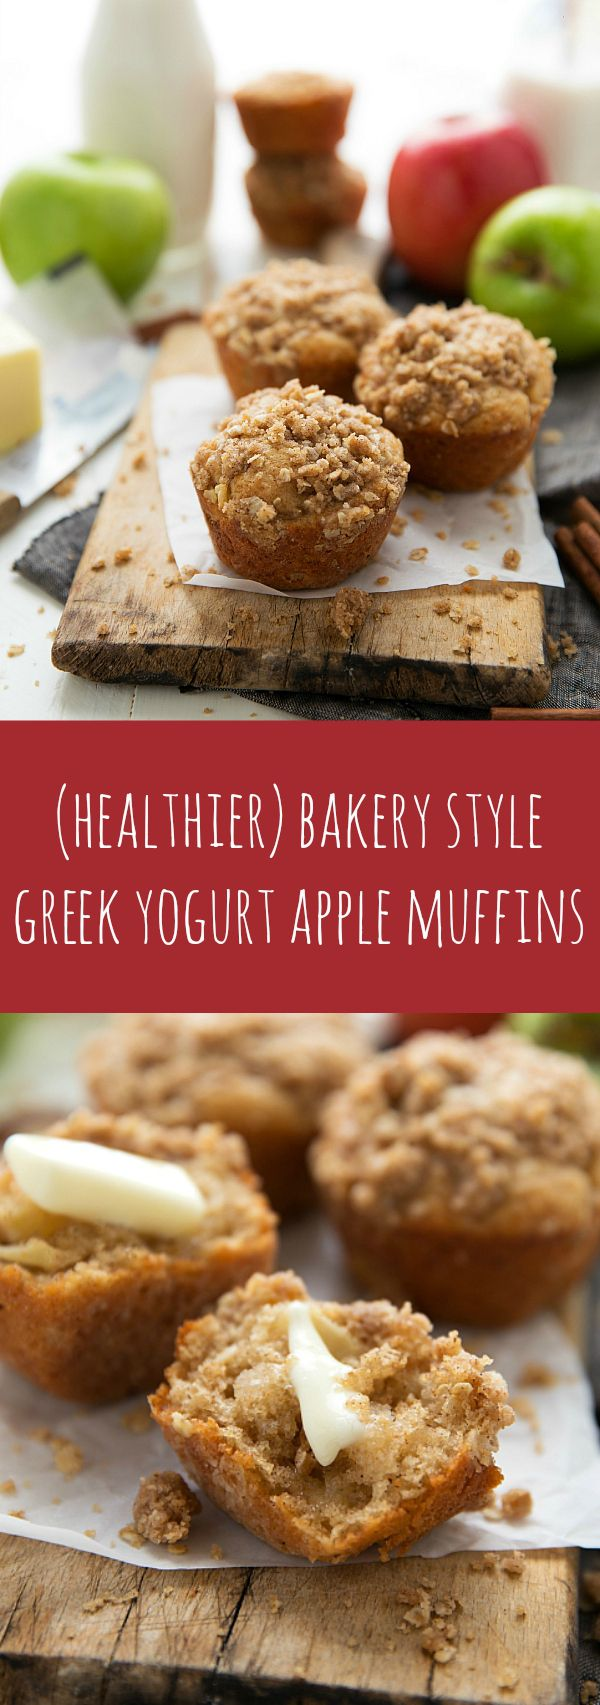 NO butter in these muffins! Plus lots of healthy swaps and still the great taste and texture of a bakery style muffin thanks to this secret ingredient!